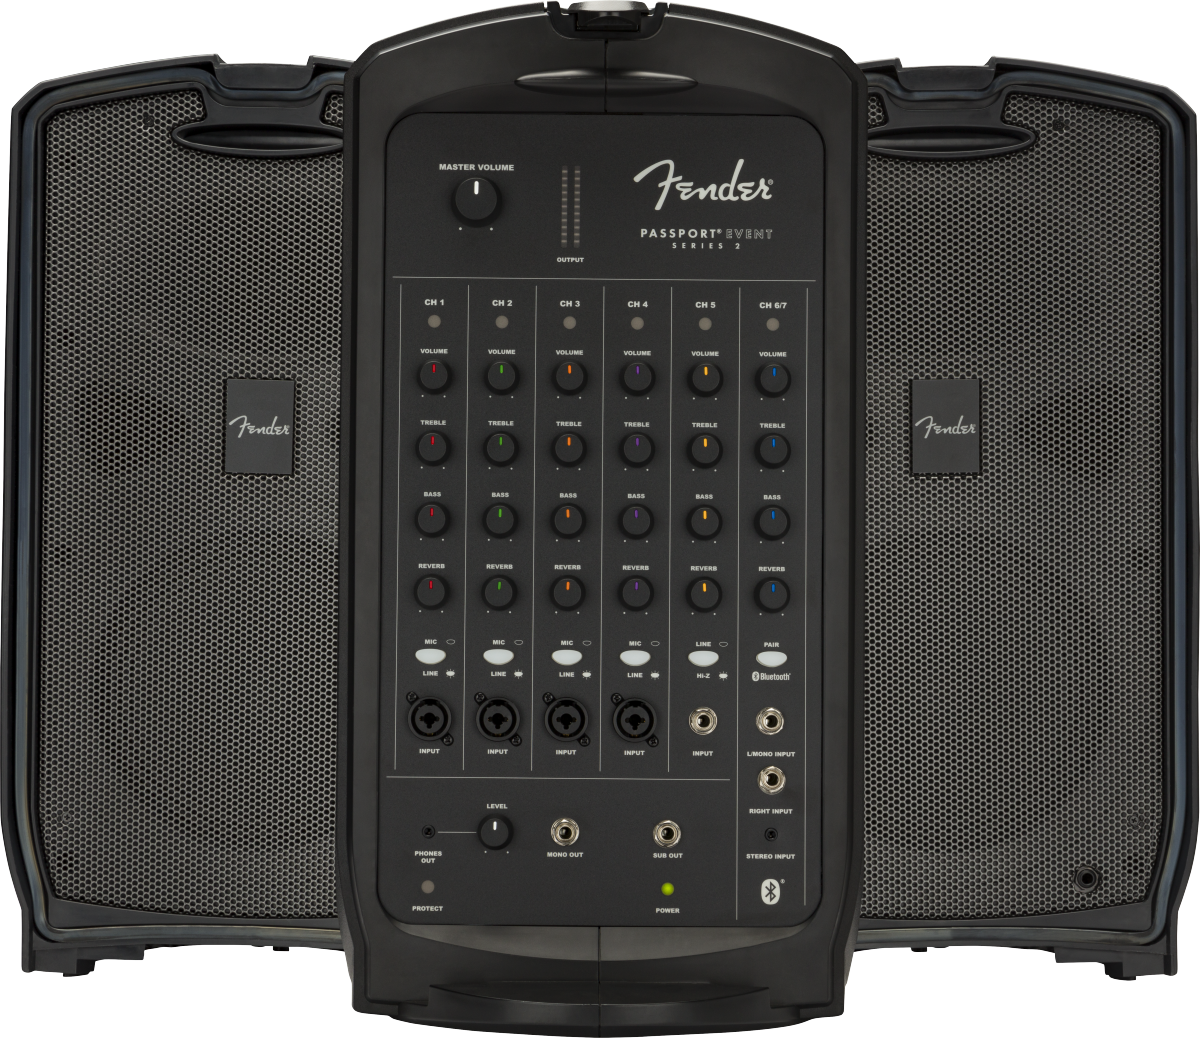 Fender Passport Event Series 2 Portable PA System